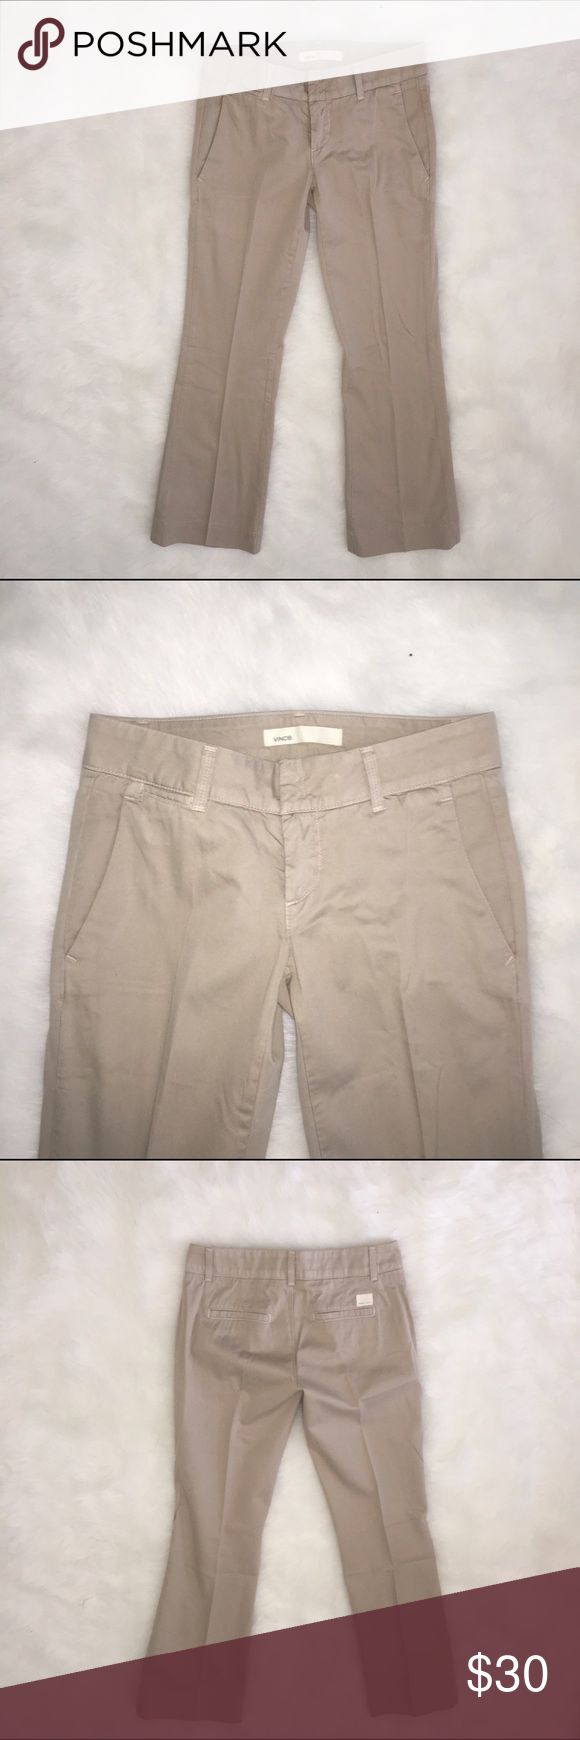 Beige Vince khaki slacks Casual or formal, these beige Vince pants are in good condition to wear almost anywhere. Very comfortable and easily paired with button down shirts and sweaters. Vince Pants Straight Leg